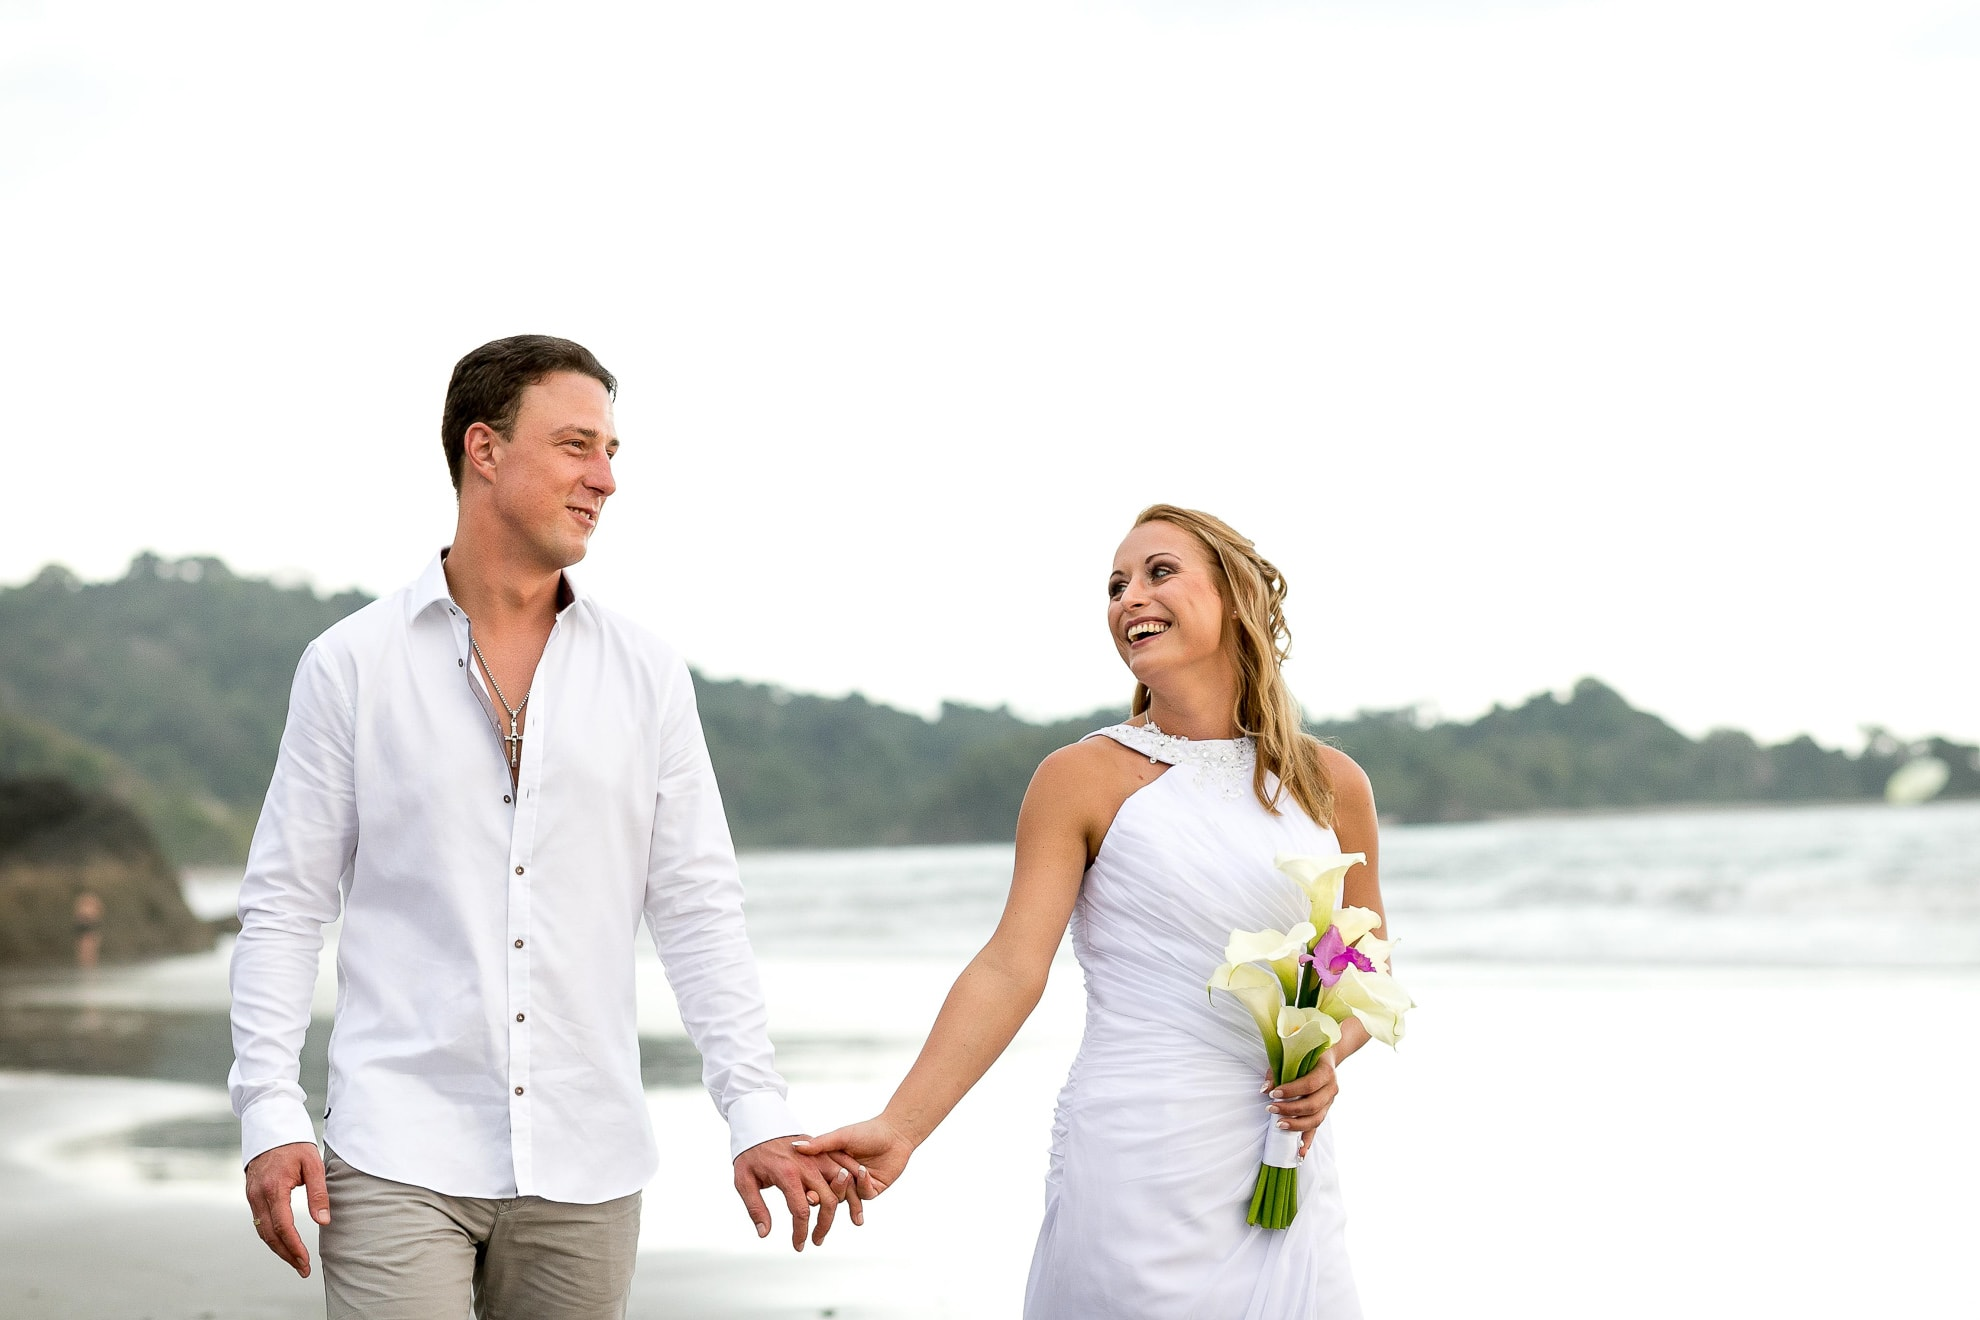 Bride and groom walking on beach in Costa Rica.